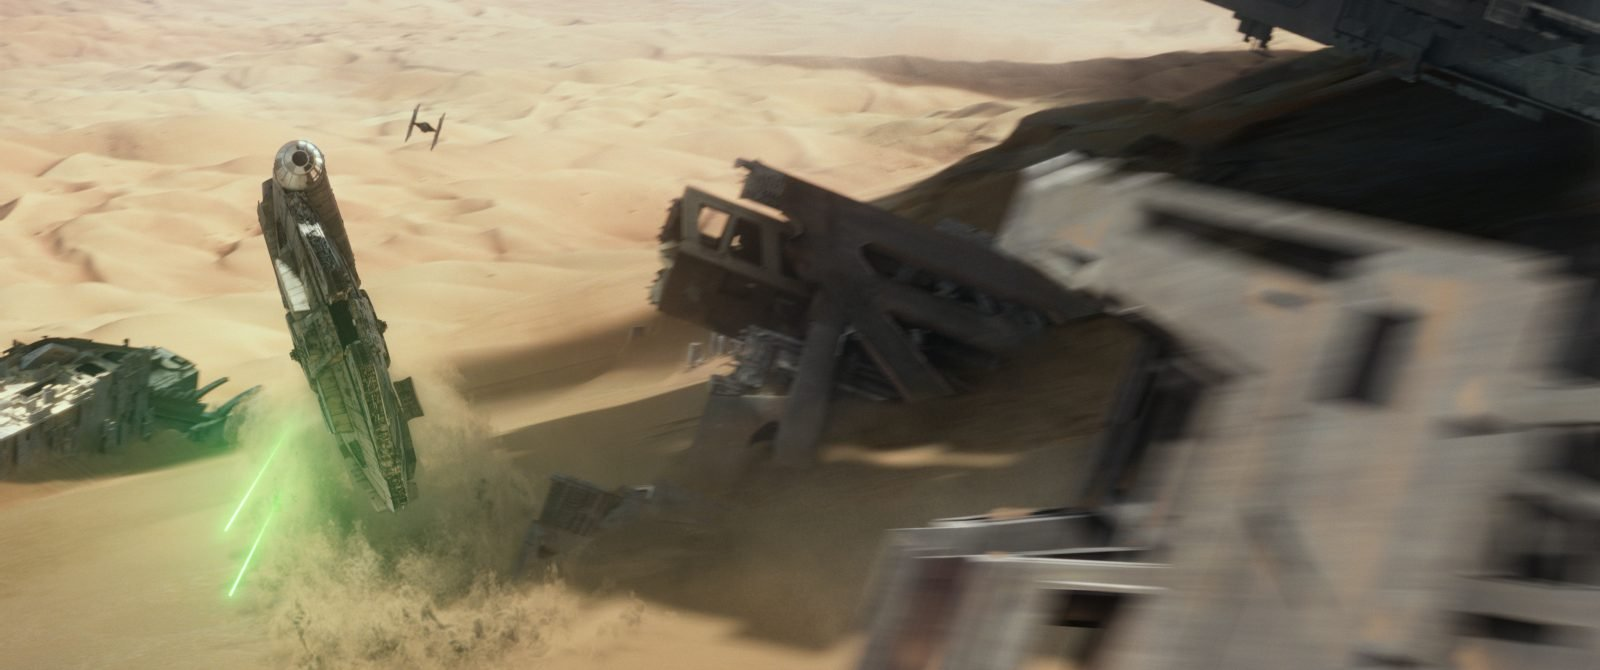 Star Wars VII The Force Awakens 20 - TIE Fighter chases Millennium Falcon